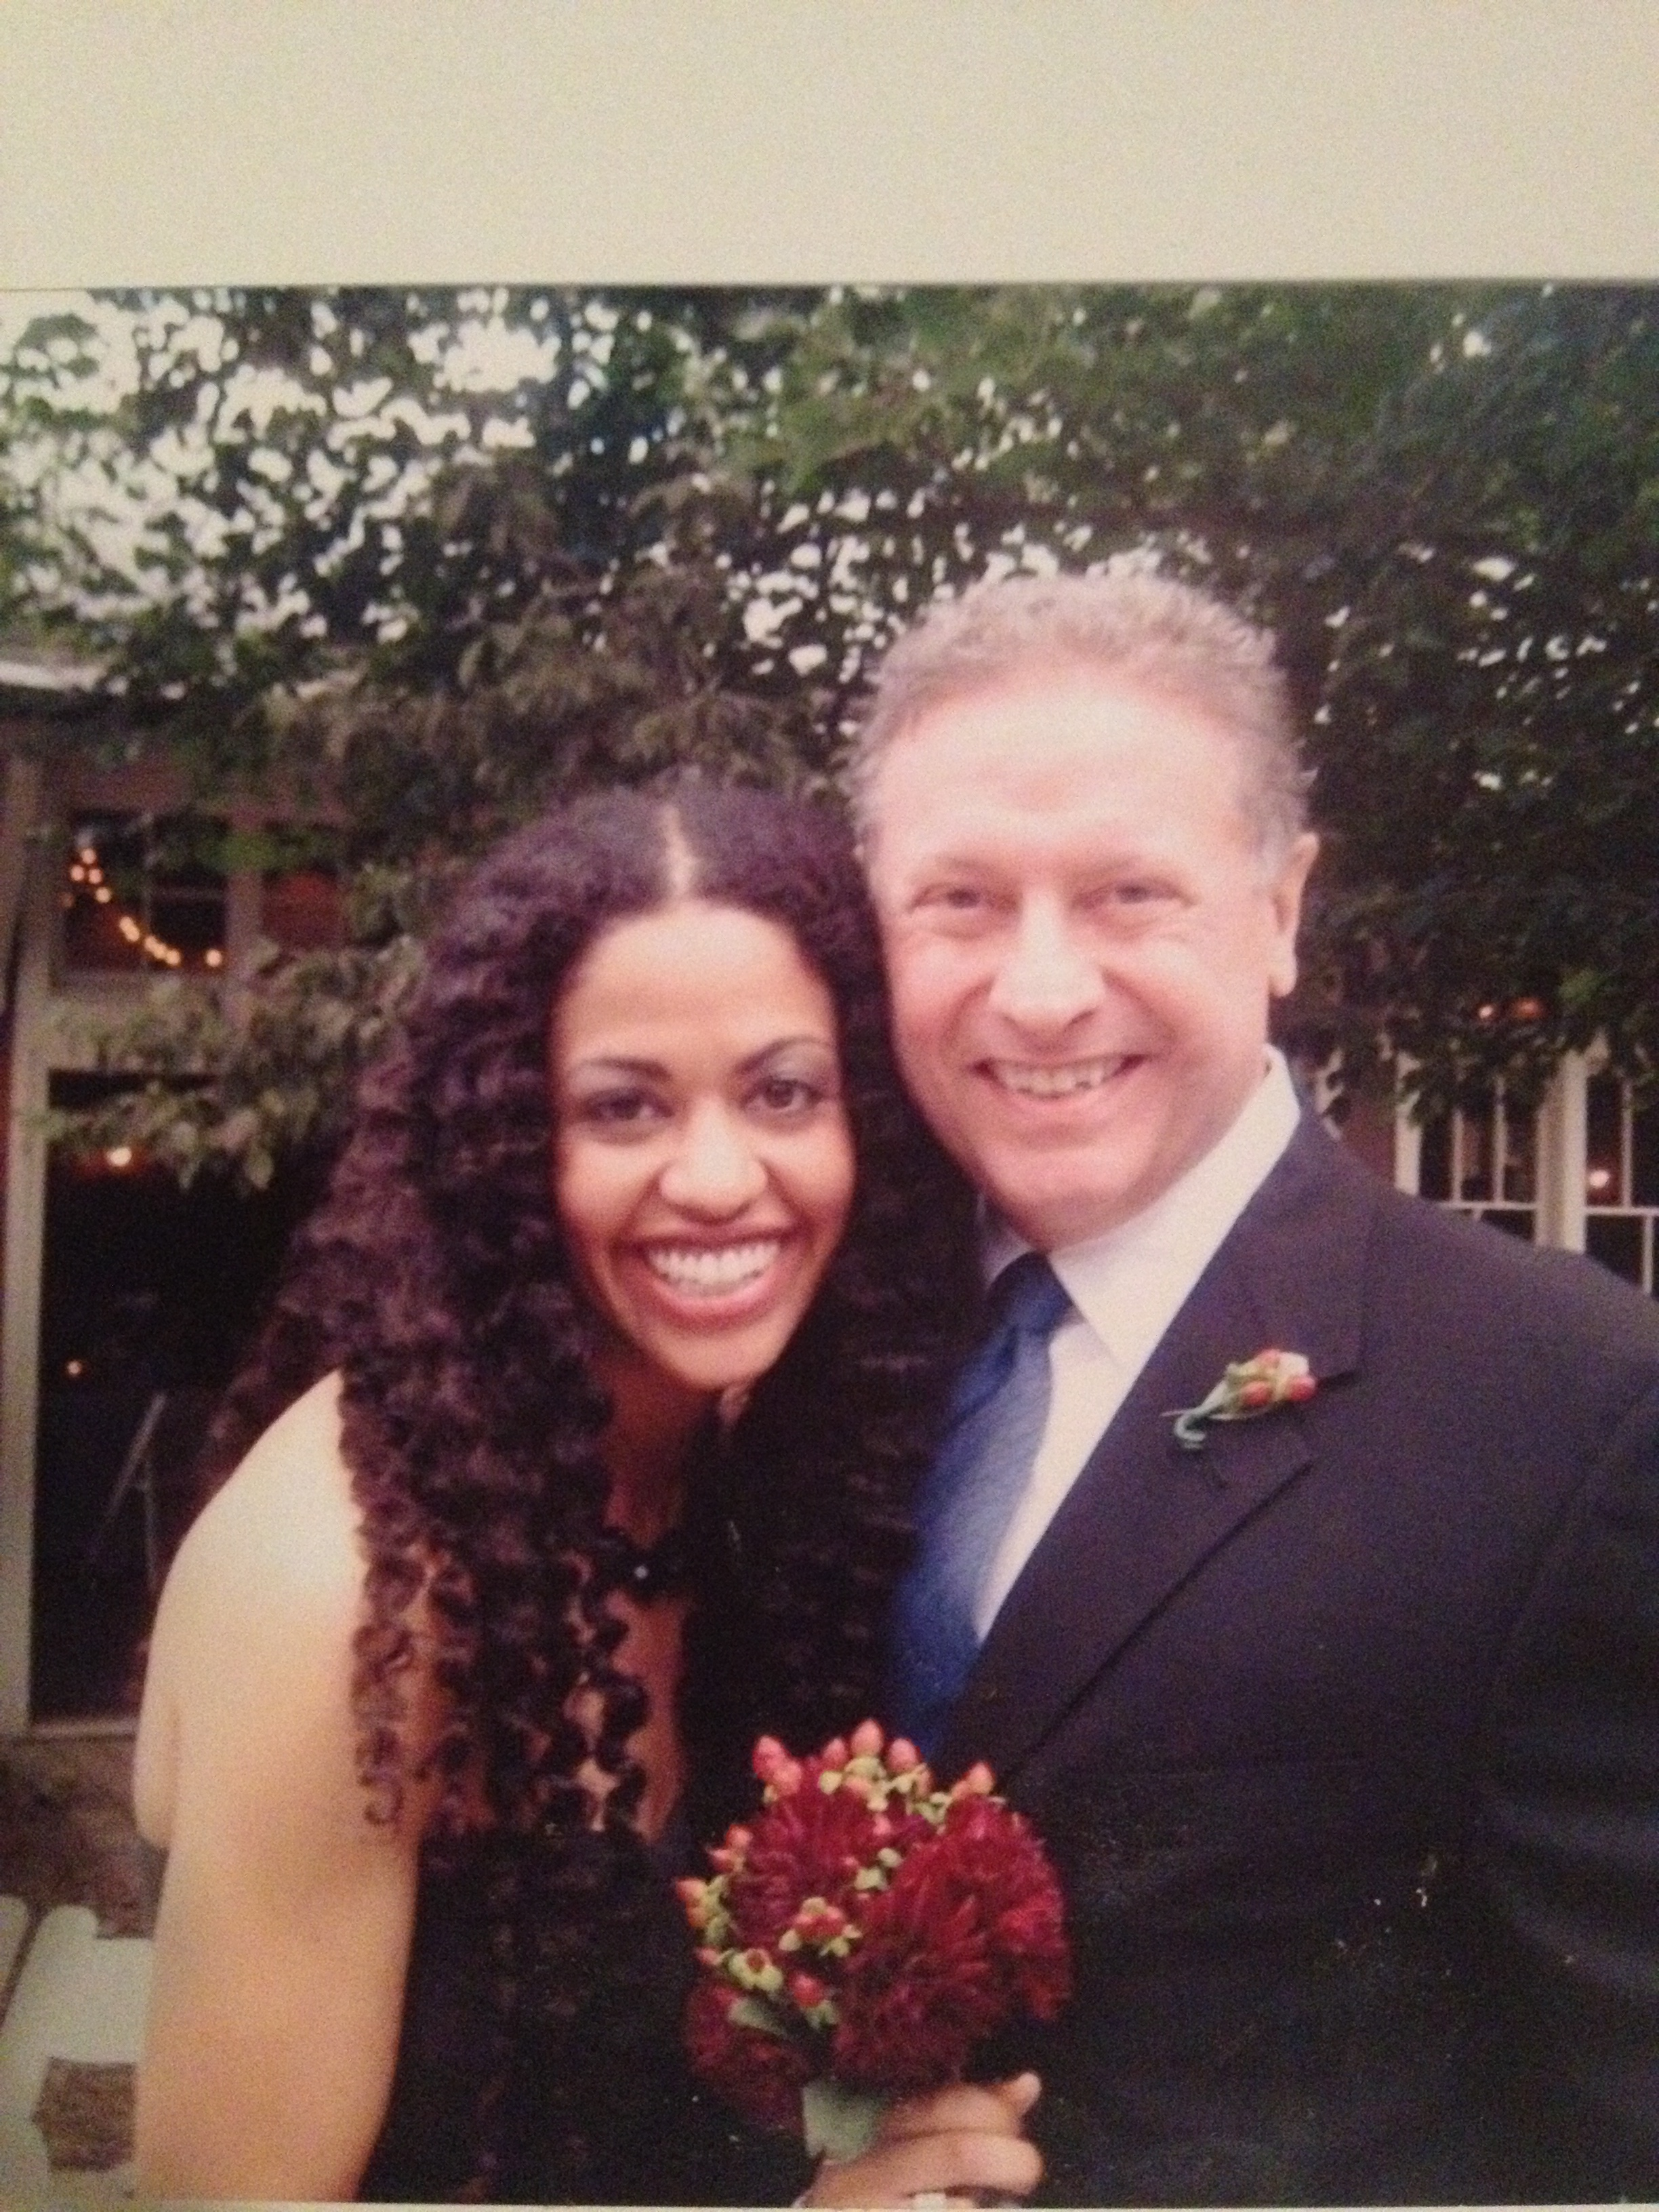 interracial marriage mulatto diaries and think father daughter and not age inappropriate interracial couple